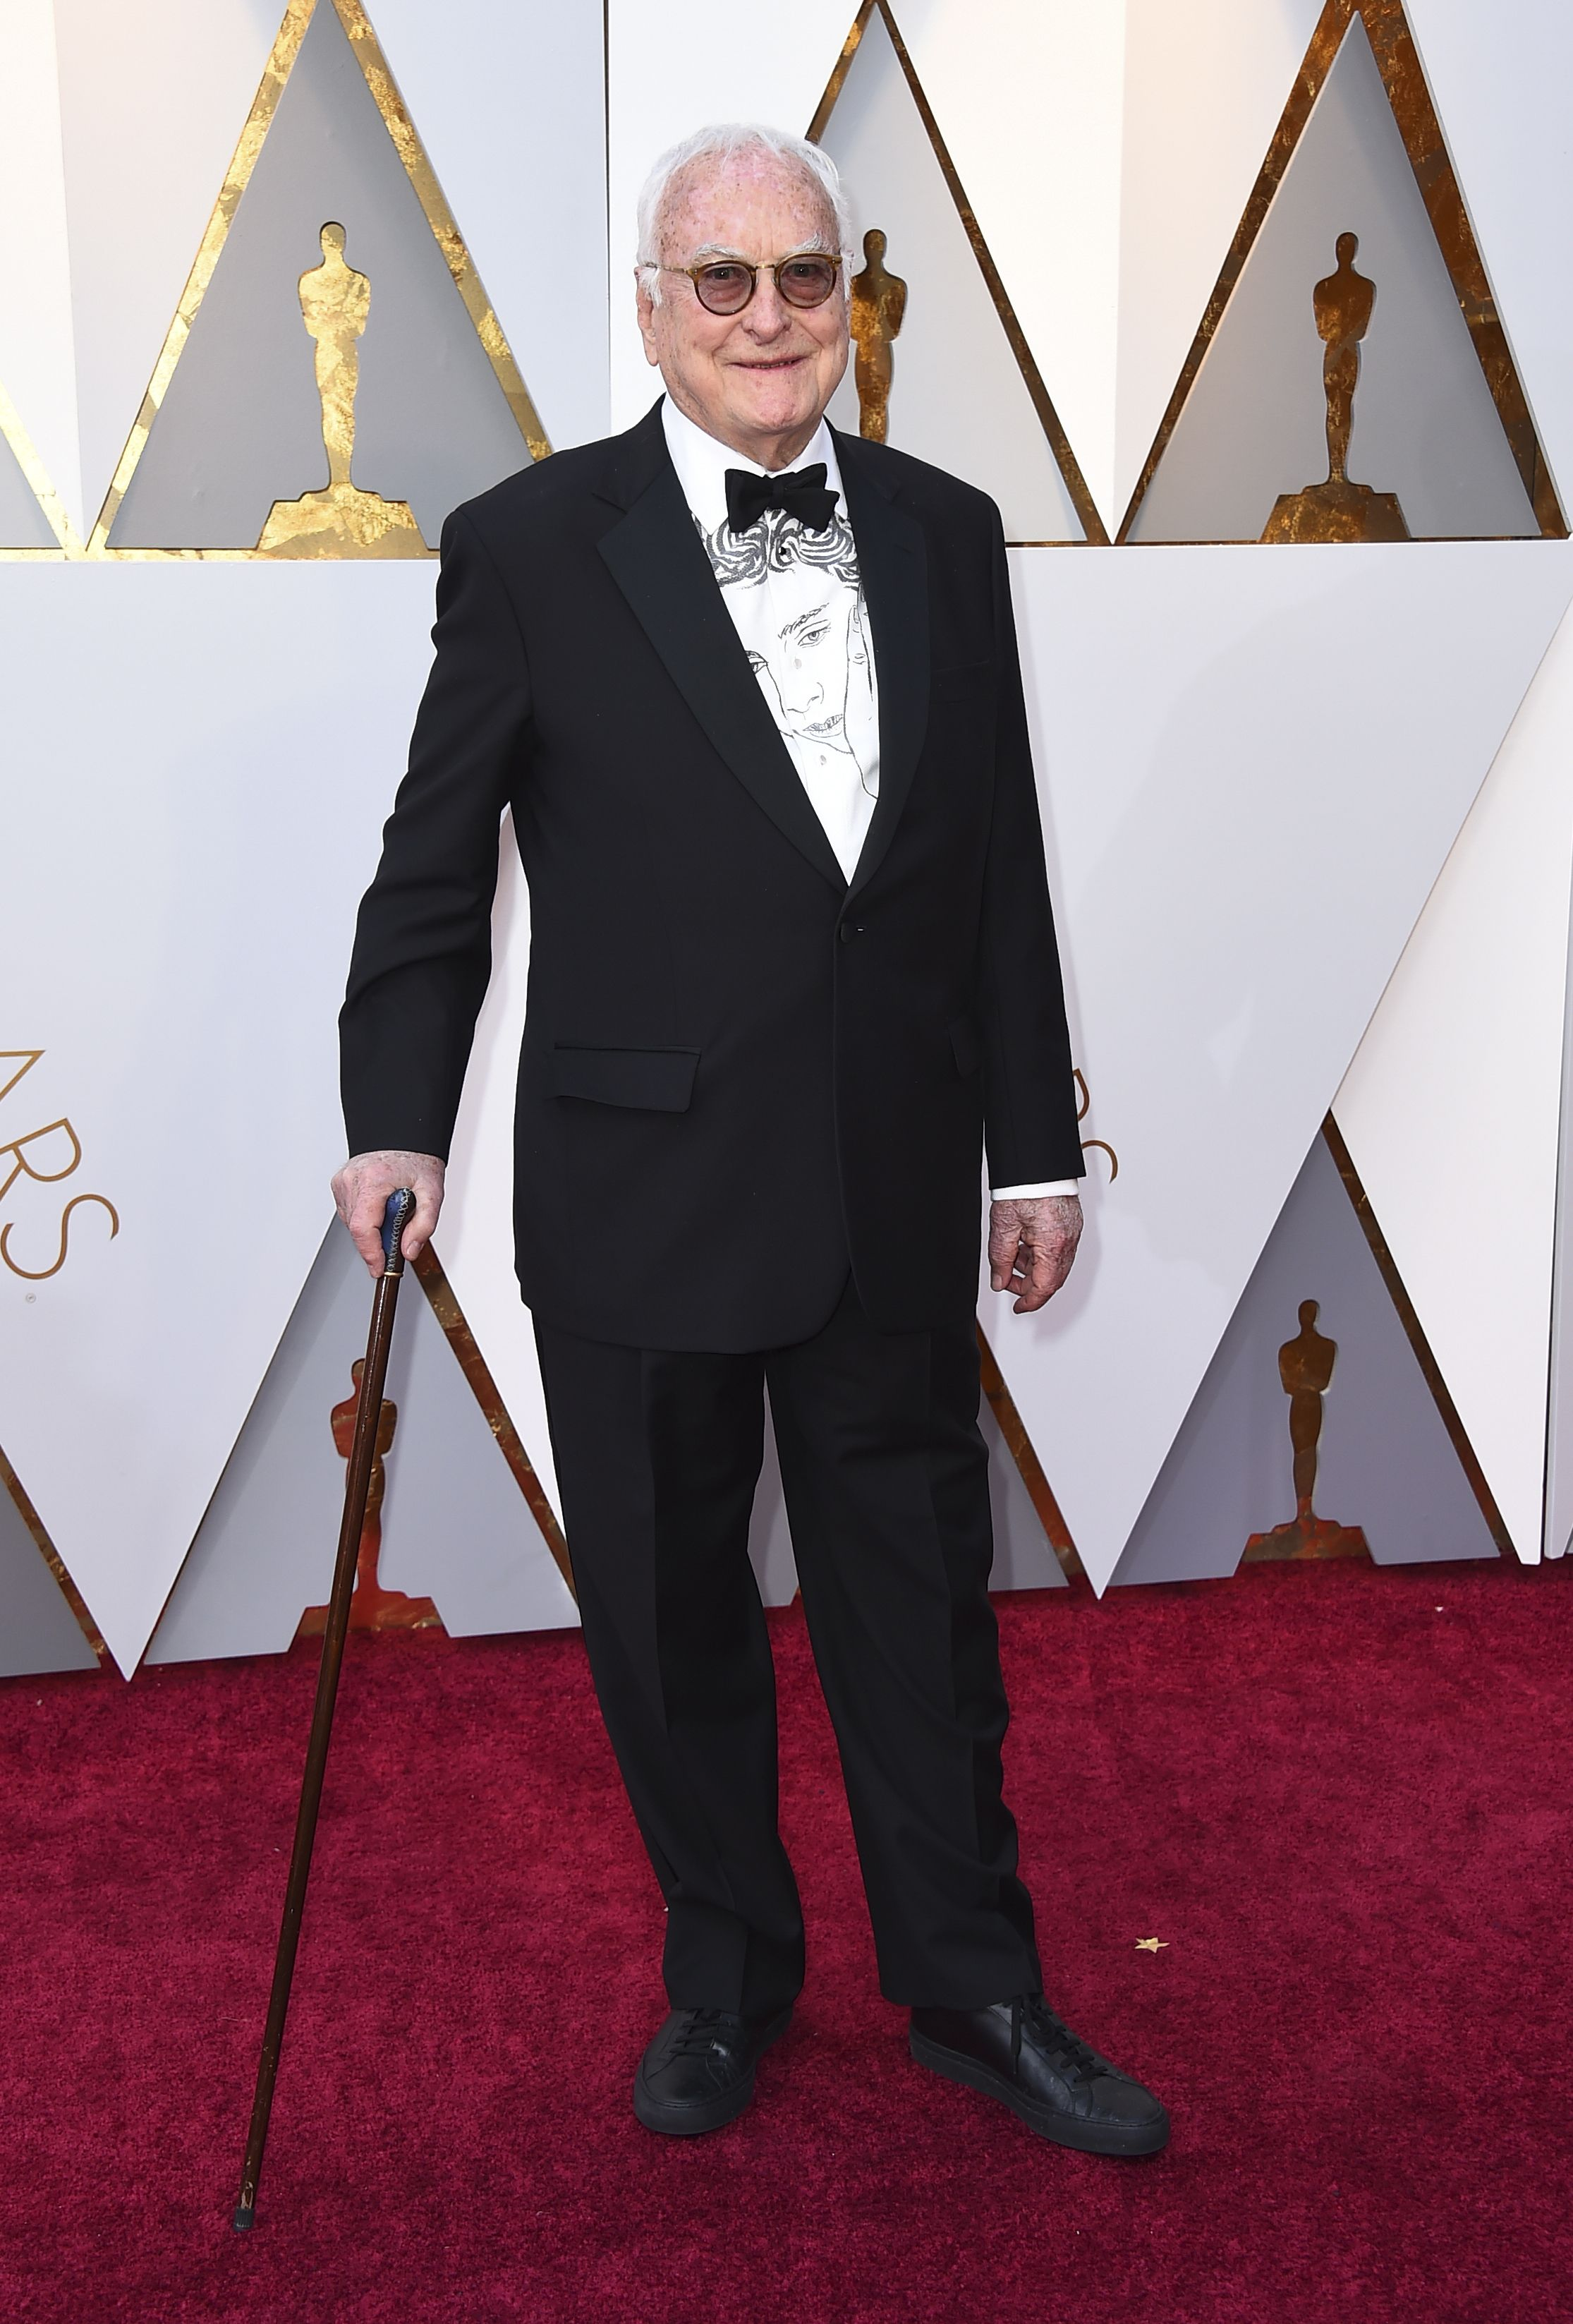 James Ivory arrives at the Oscars, at the Dolby Theatre in Los Angeles90th Academy Awards - Arrivals, Los Angeles, USA - 04 Mar 2018